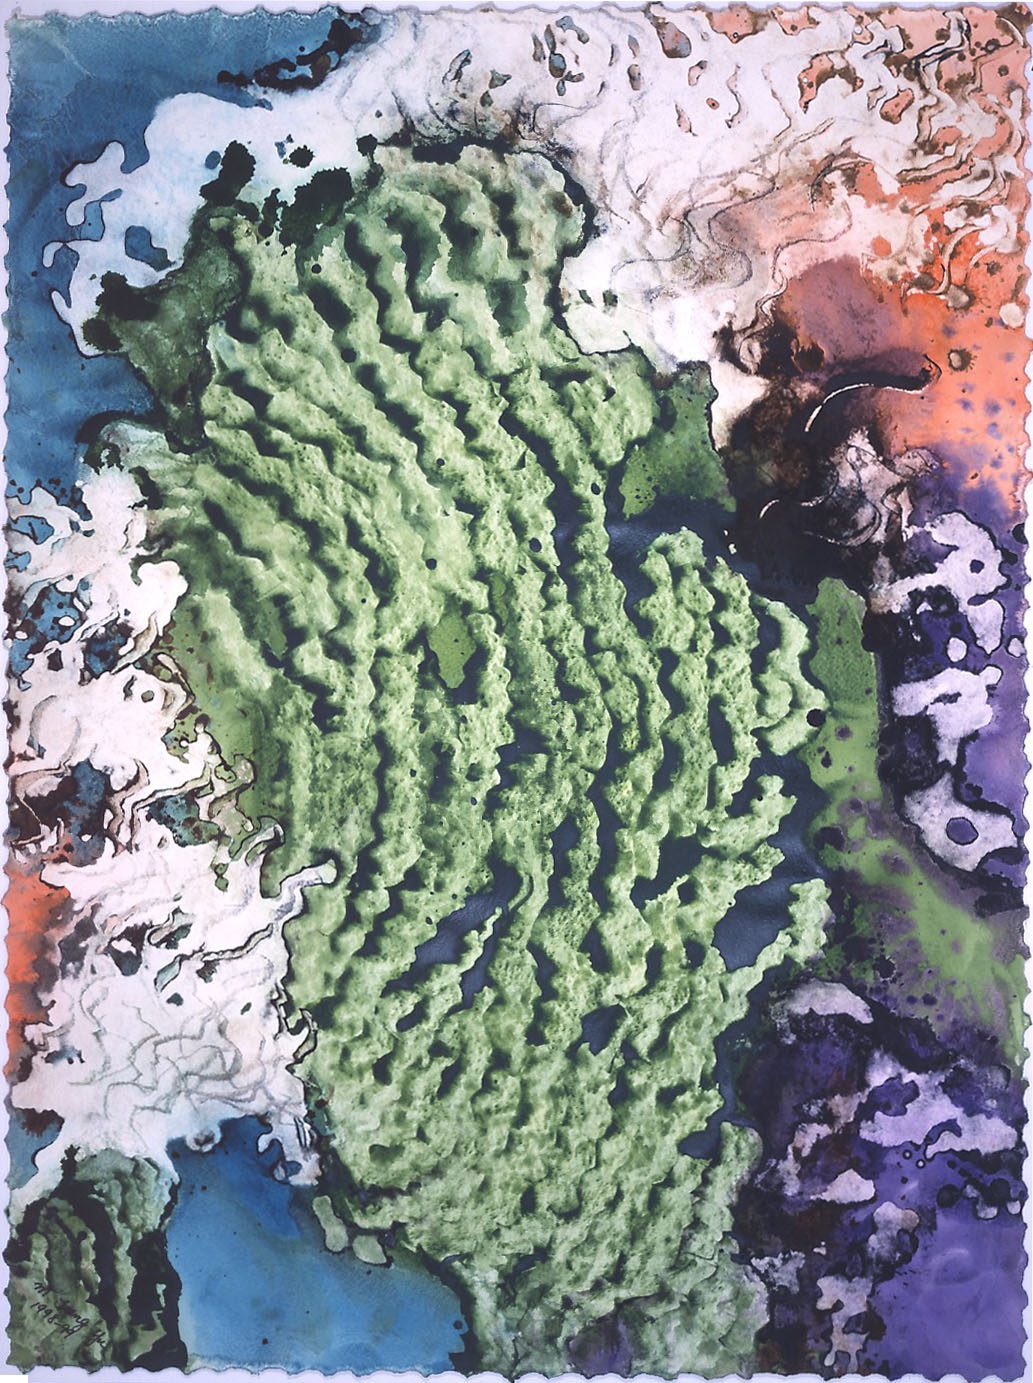 """""""Moss Carpet"""" 1998, Forest Moss Series, acrylic on paper, 42 x 32 in (107 x 81 cm)."""